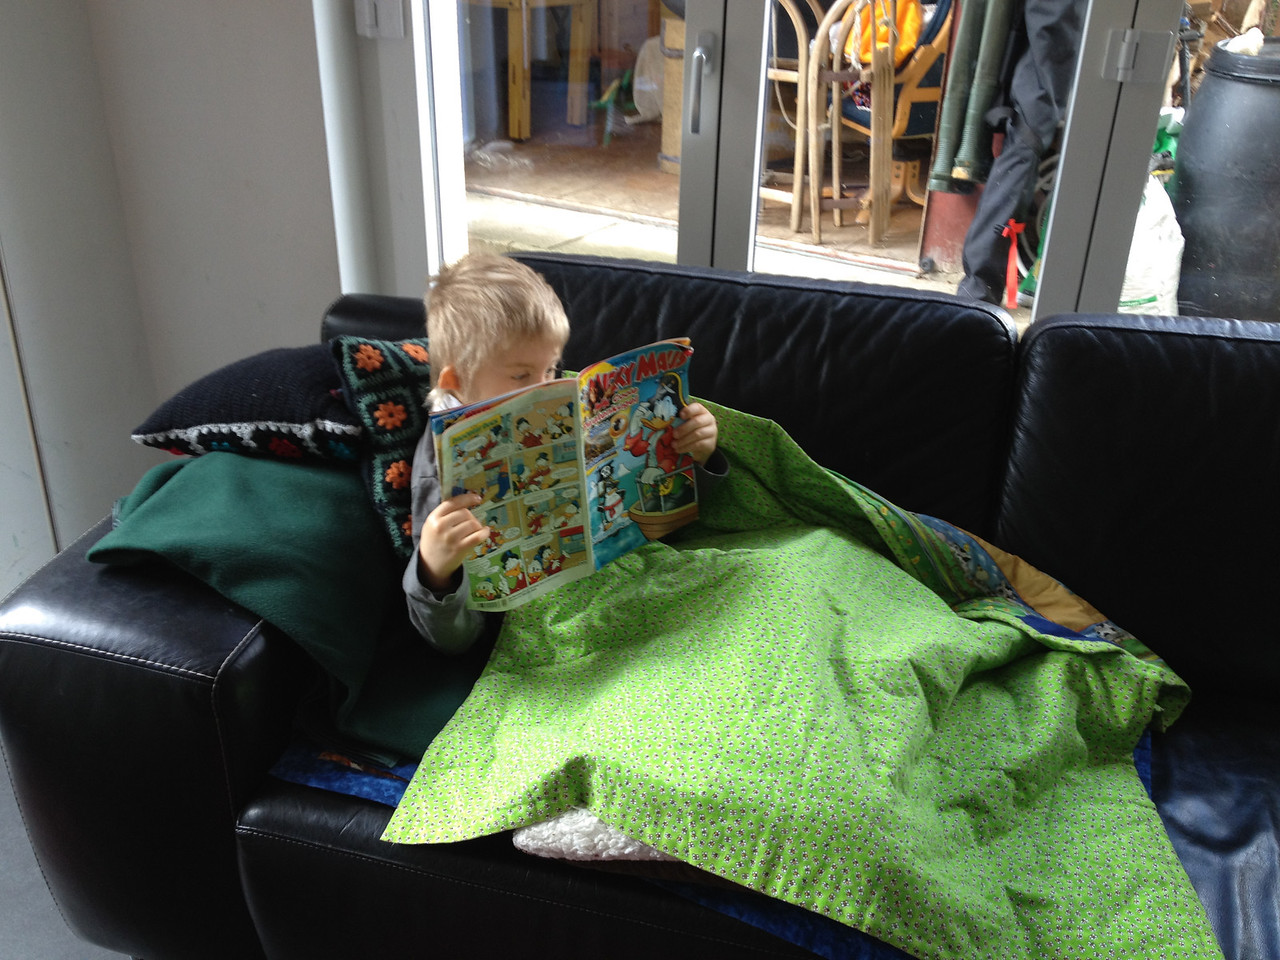 Sunday 22nd April 2012 - Cai catches up on the Disney news while resting his leg